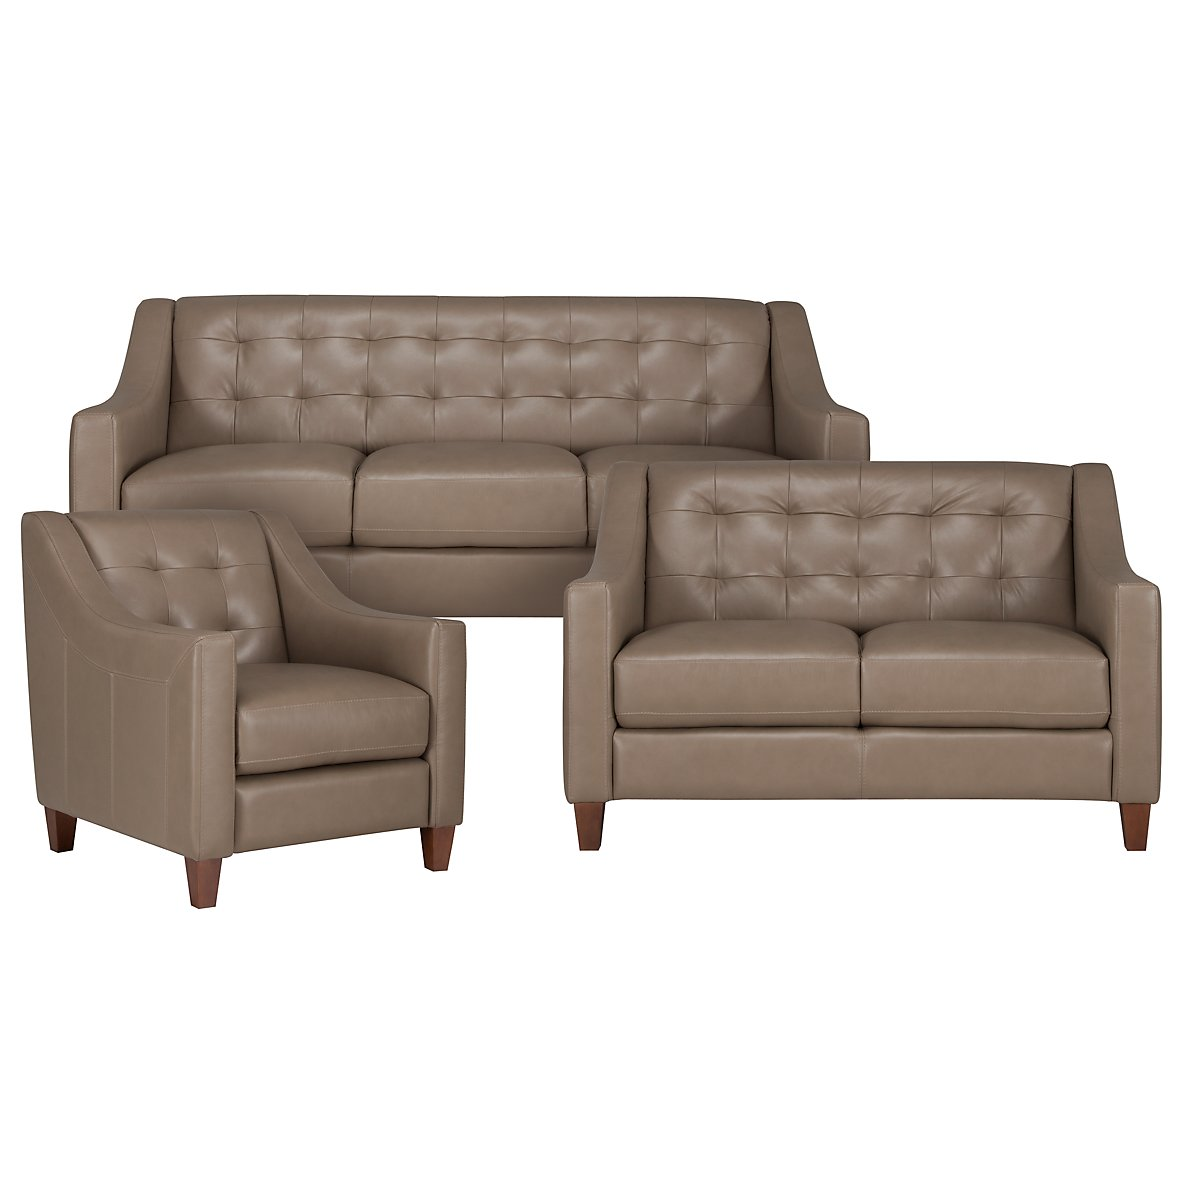 Elise Pewter Leather Living Room